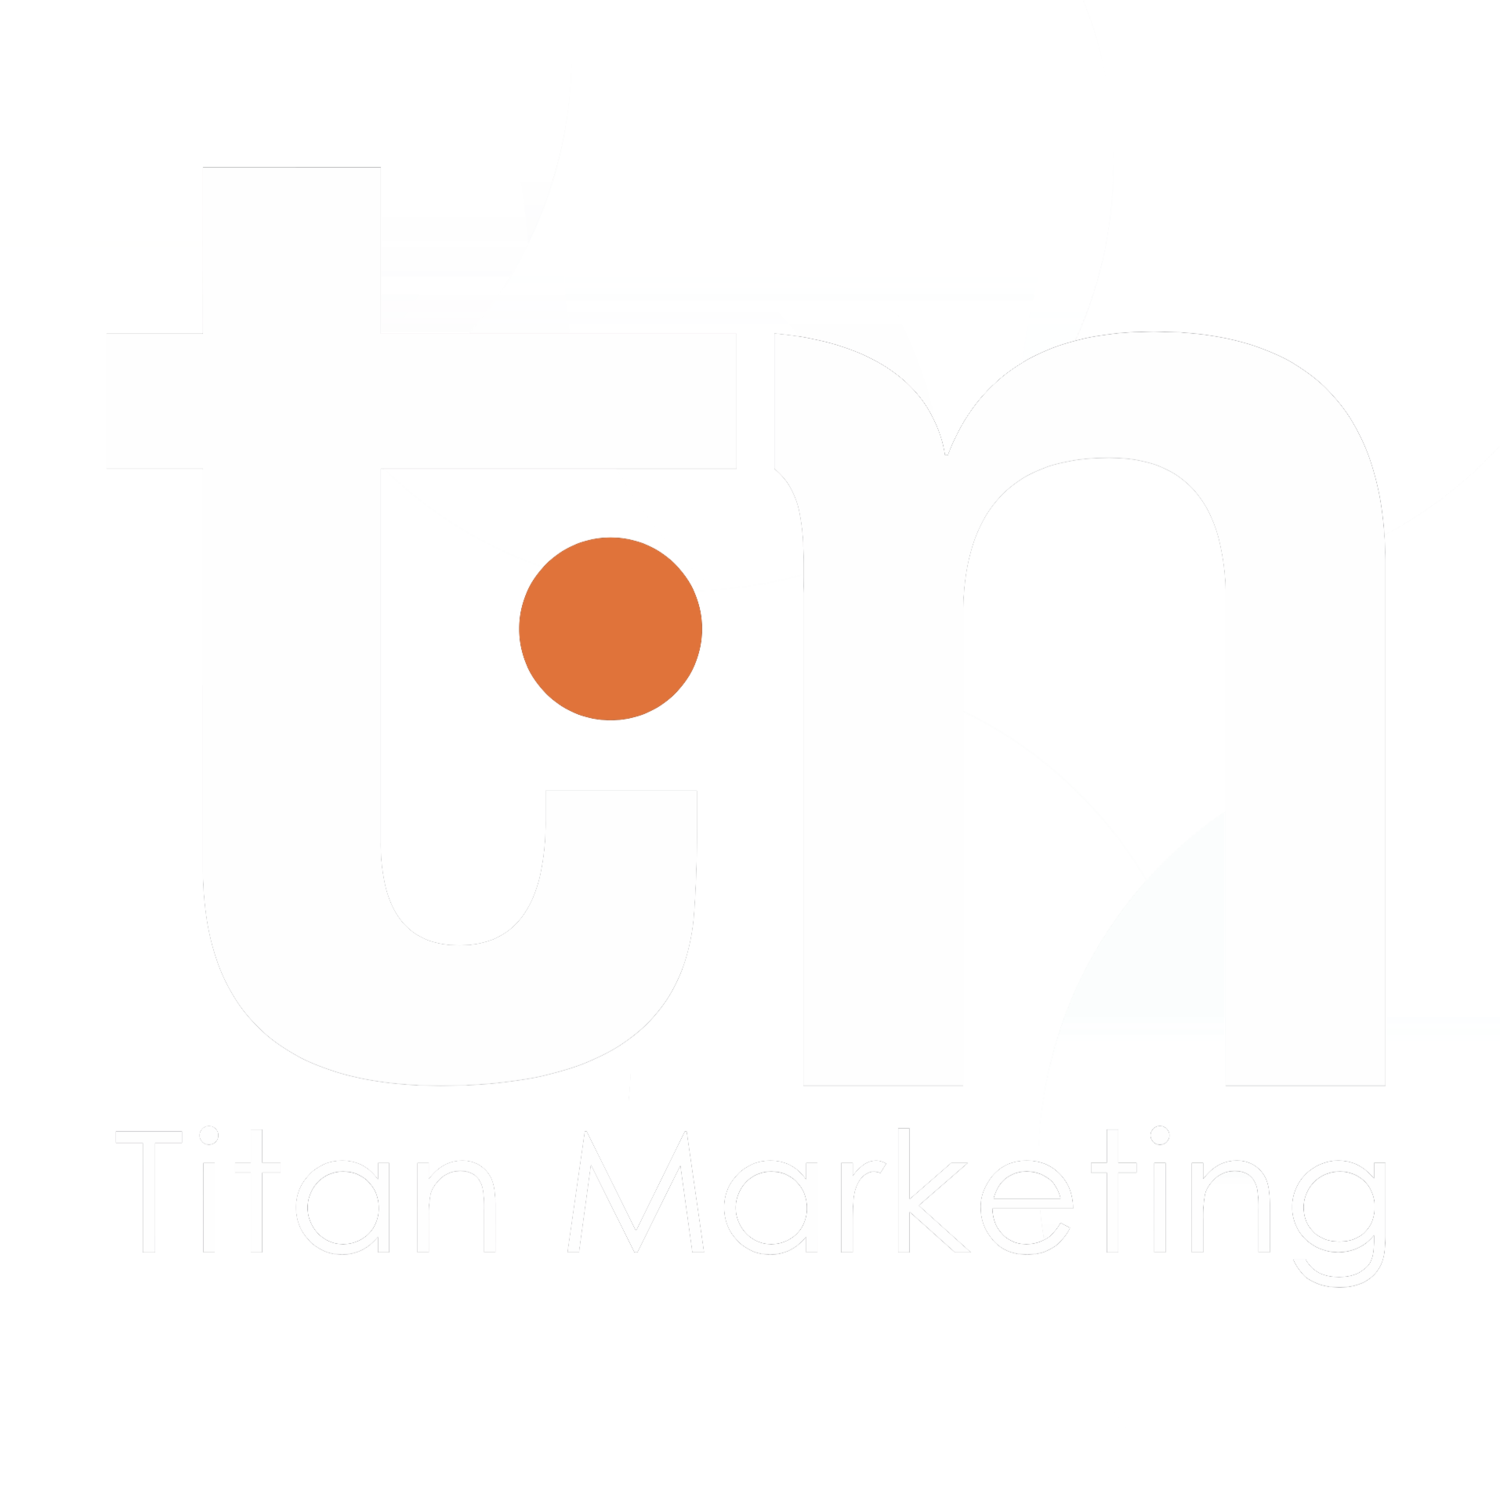 Titan Marketing